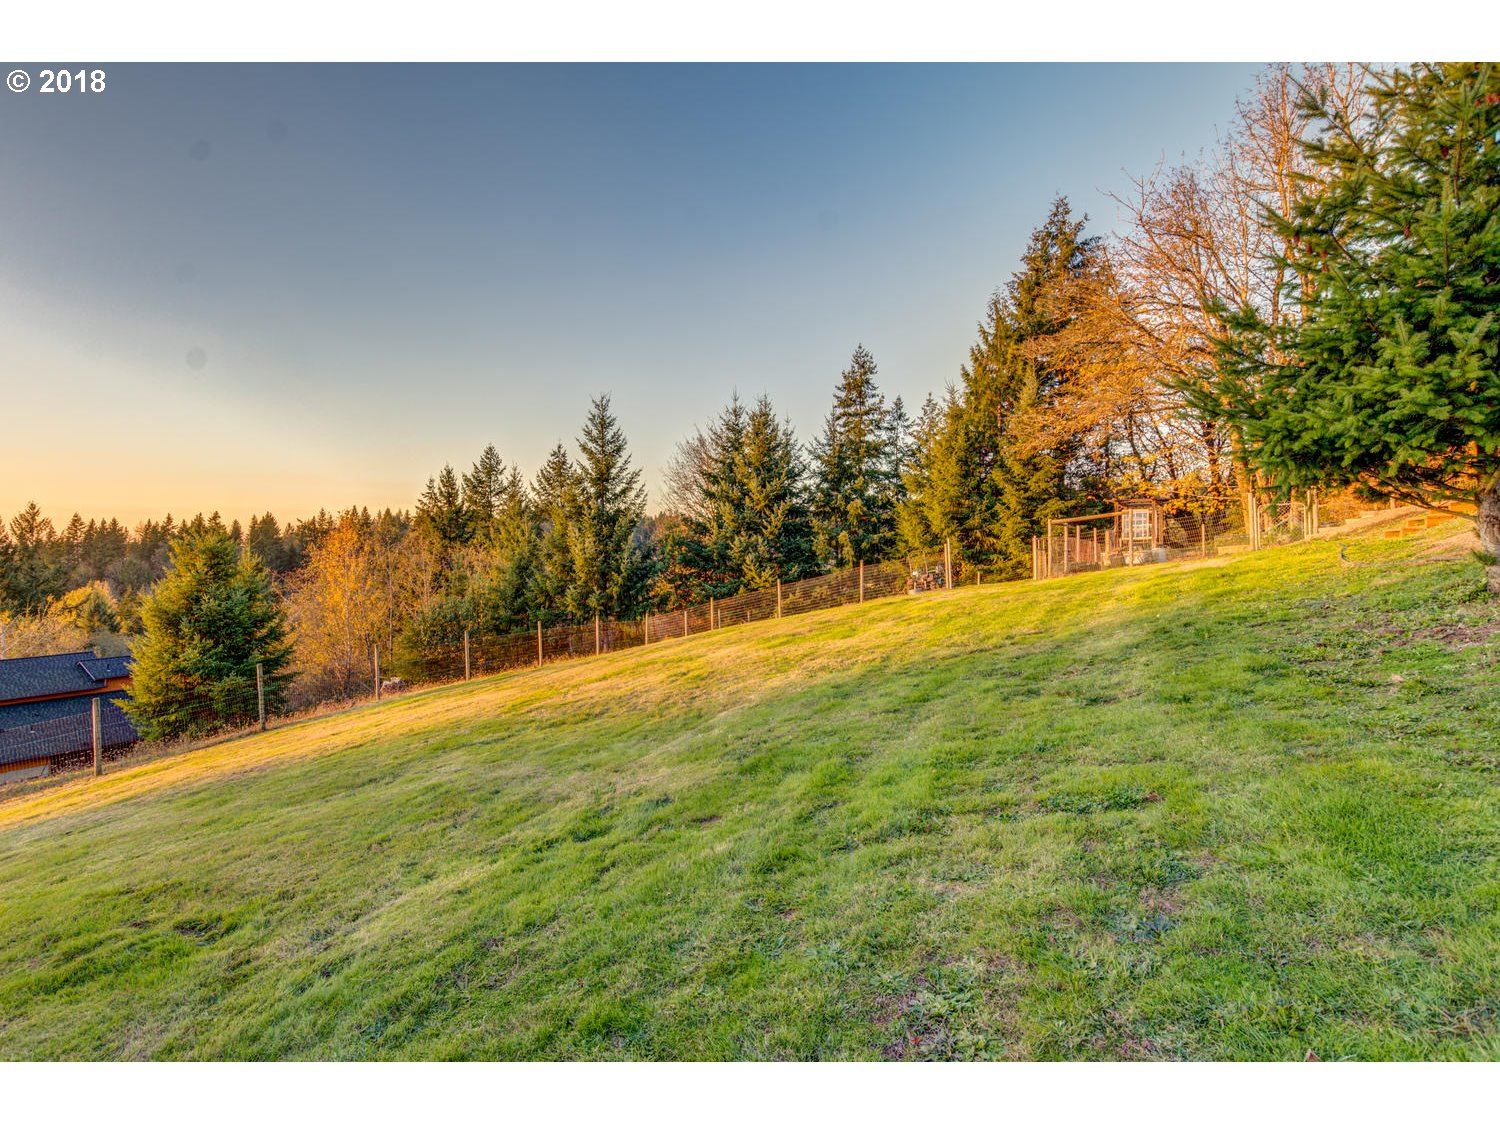 448 LANE RD Woodland, WA 98674 - MLS #: 18047437